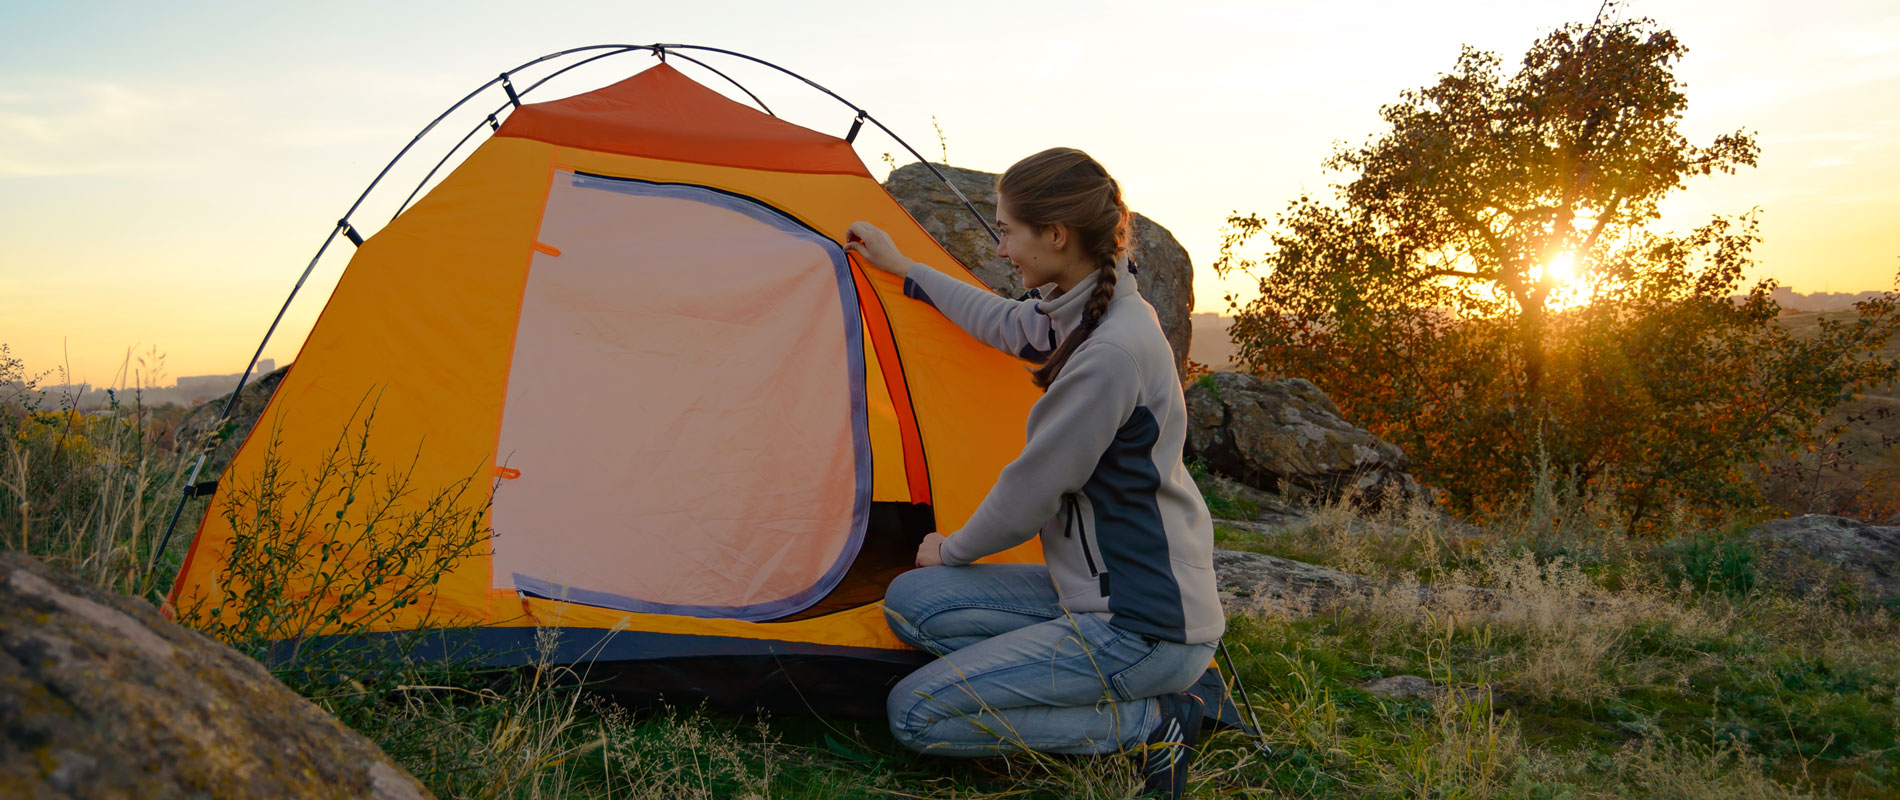 Girl putting up a tent surrounded by nature